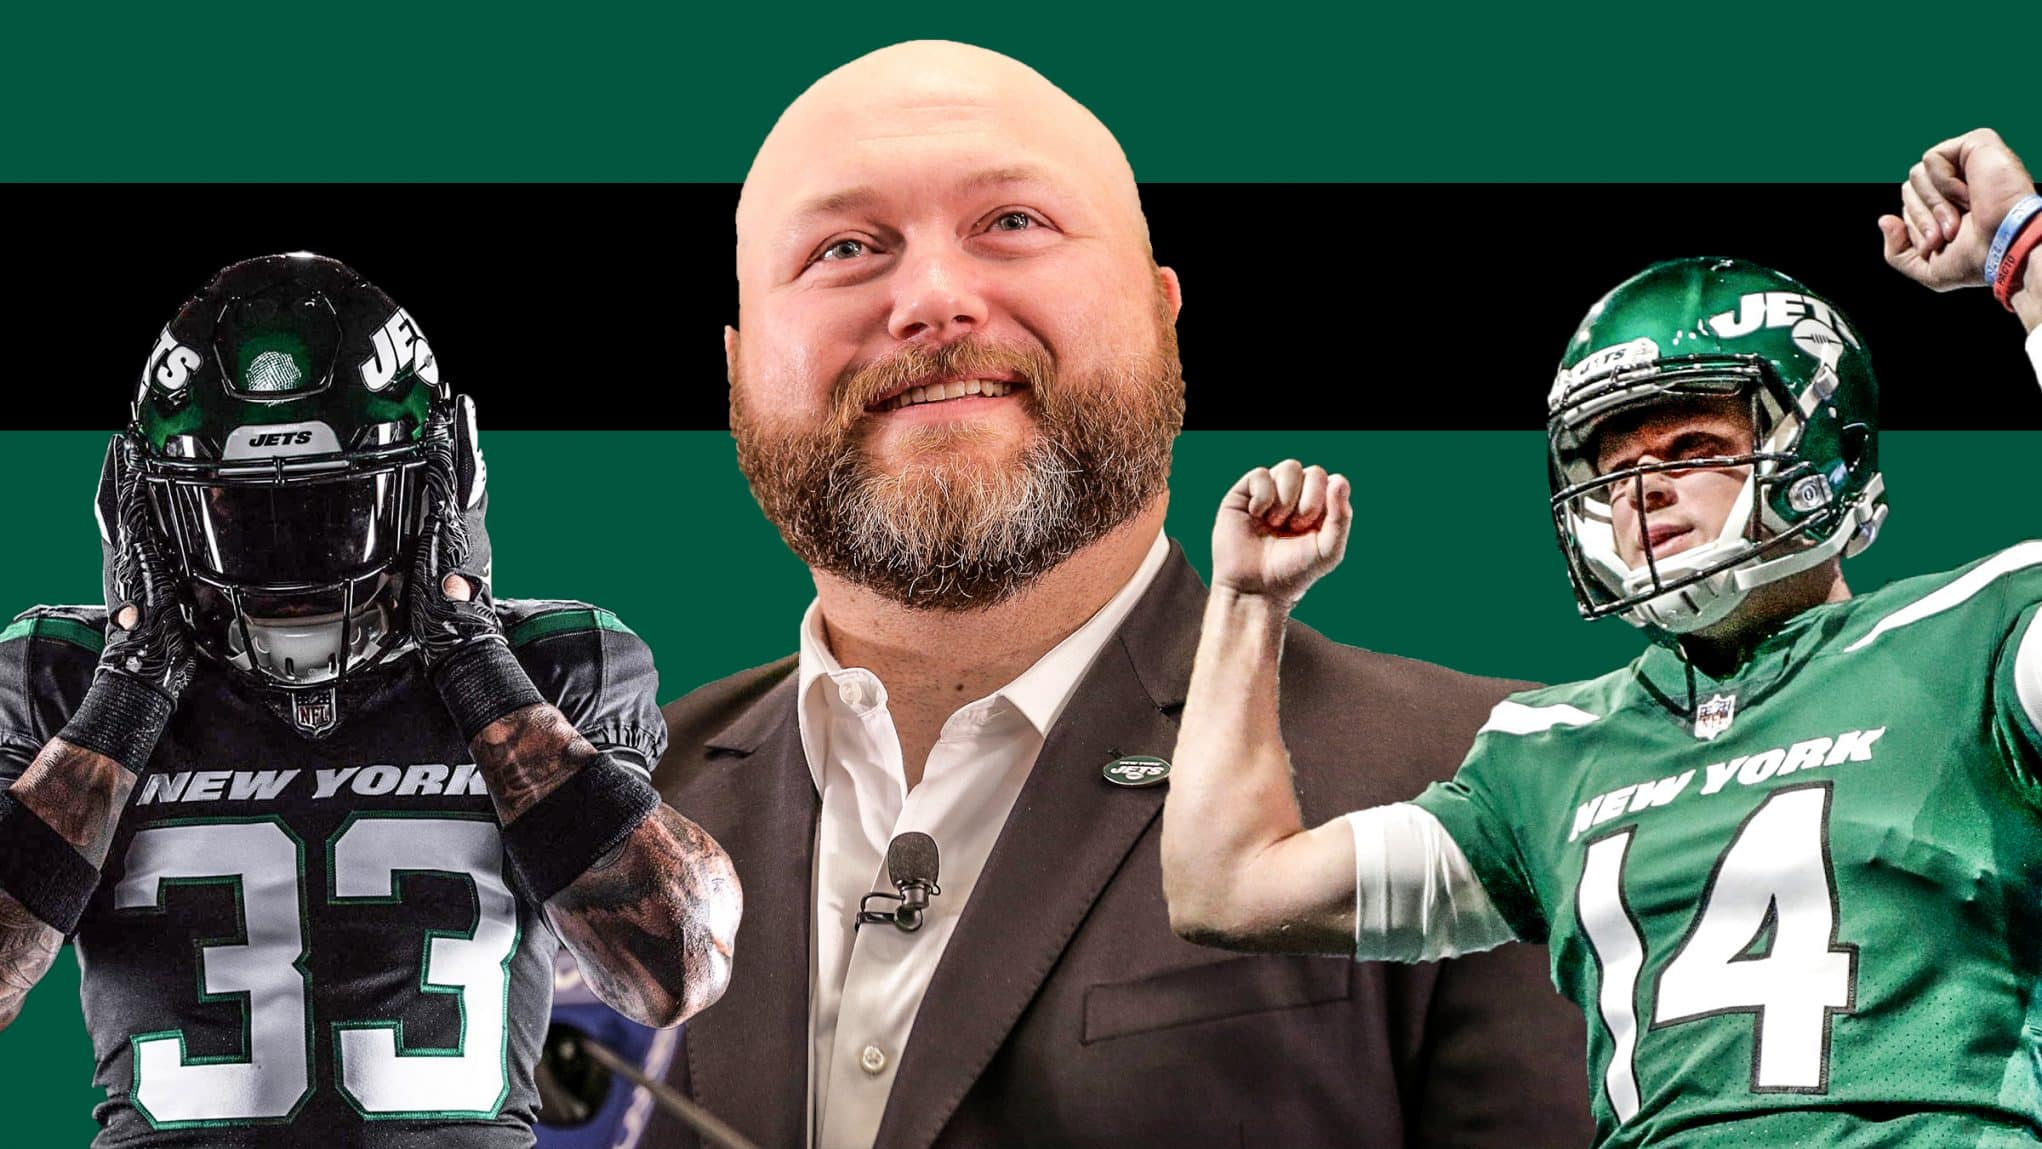 New York Jets Schedule 2020 Meet the 2020 New York Jets: The Super Bowl champions